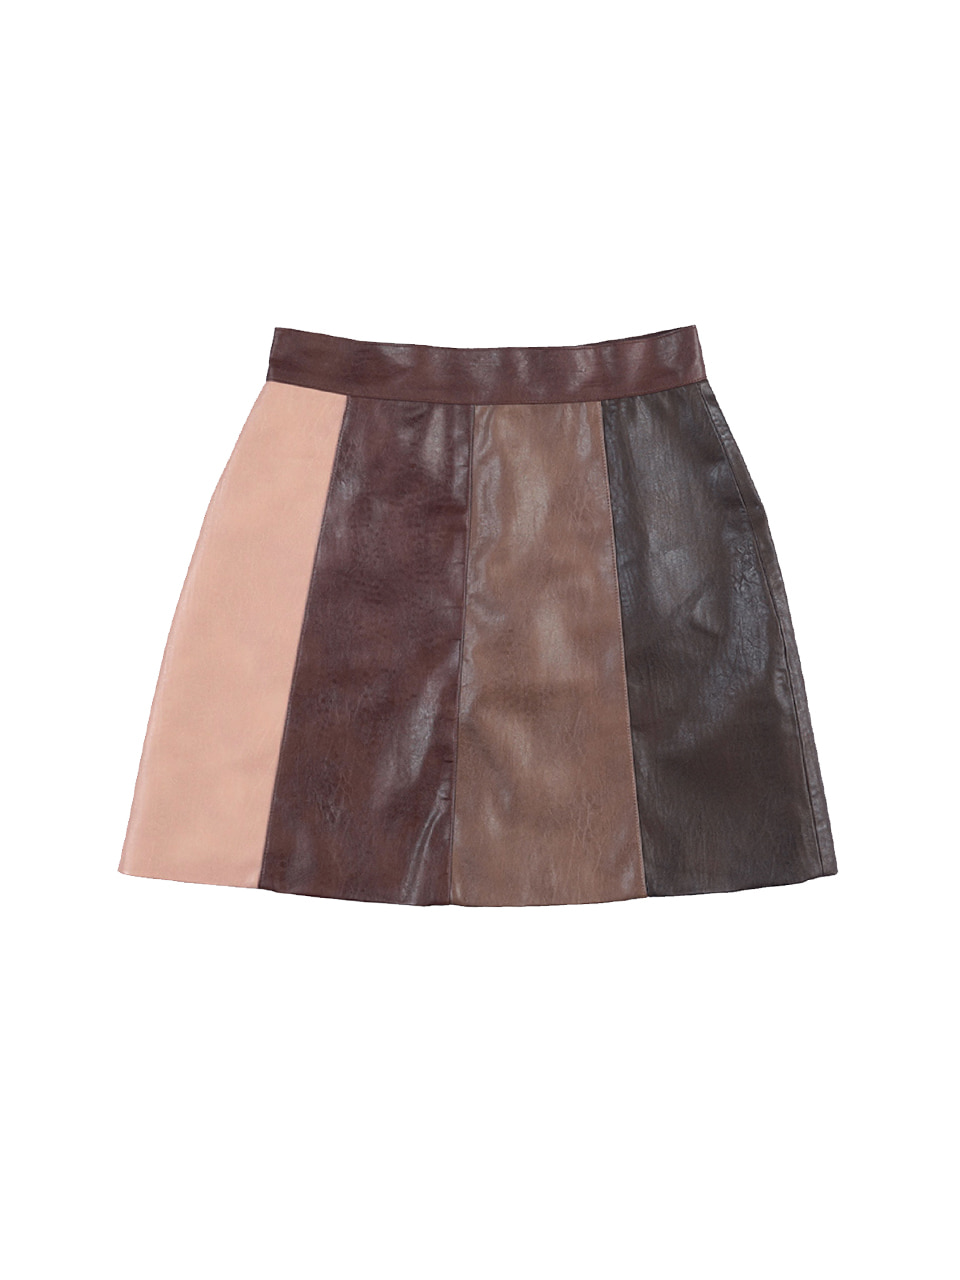 mgmg artificial leather skirt_dark brown